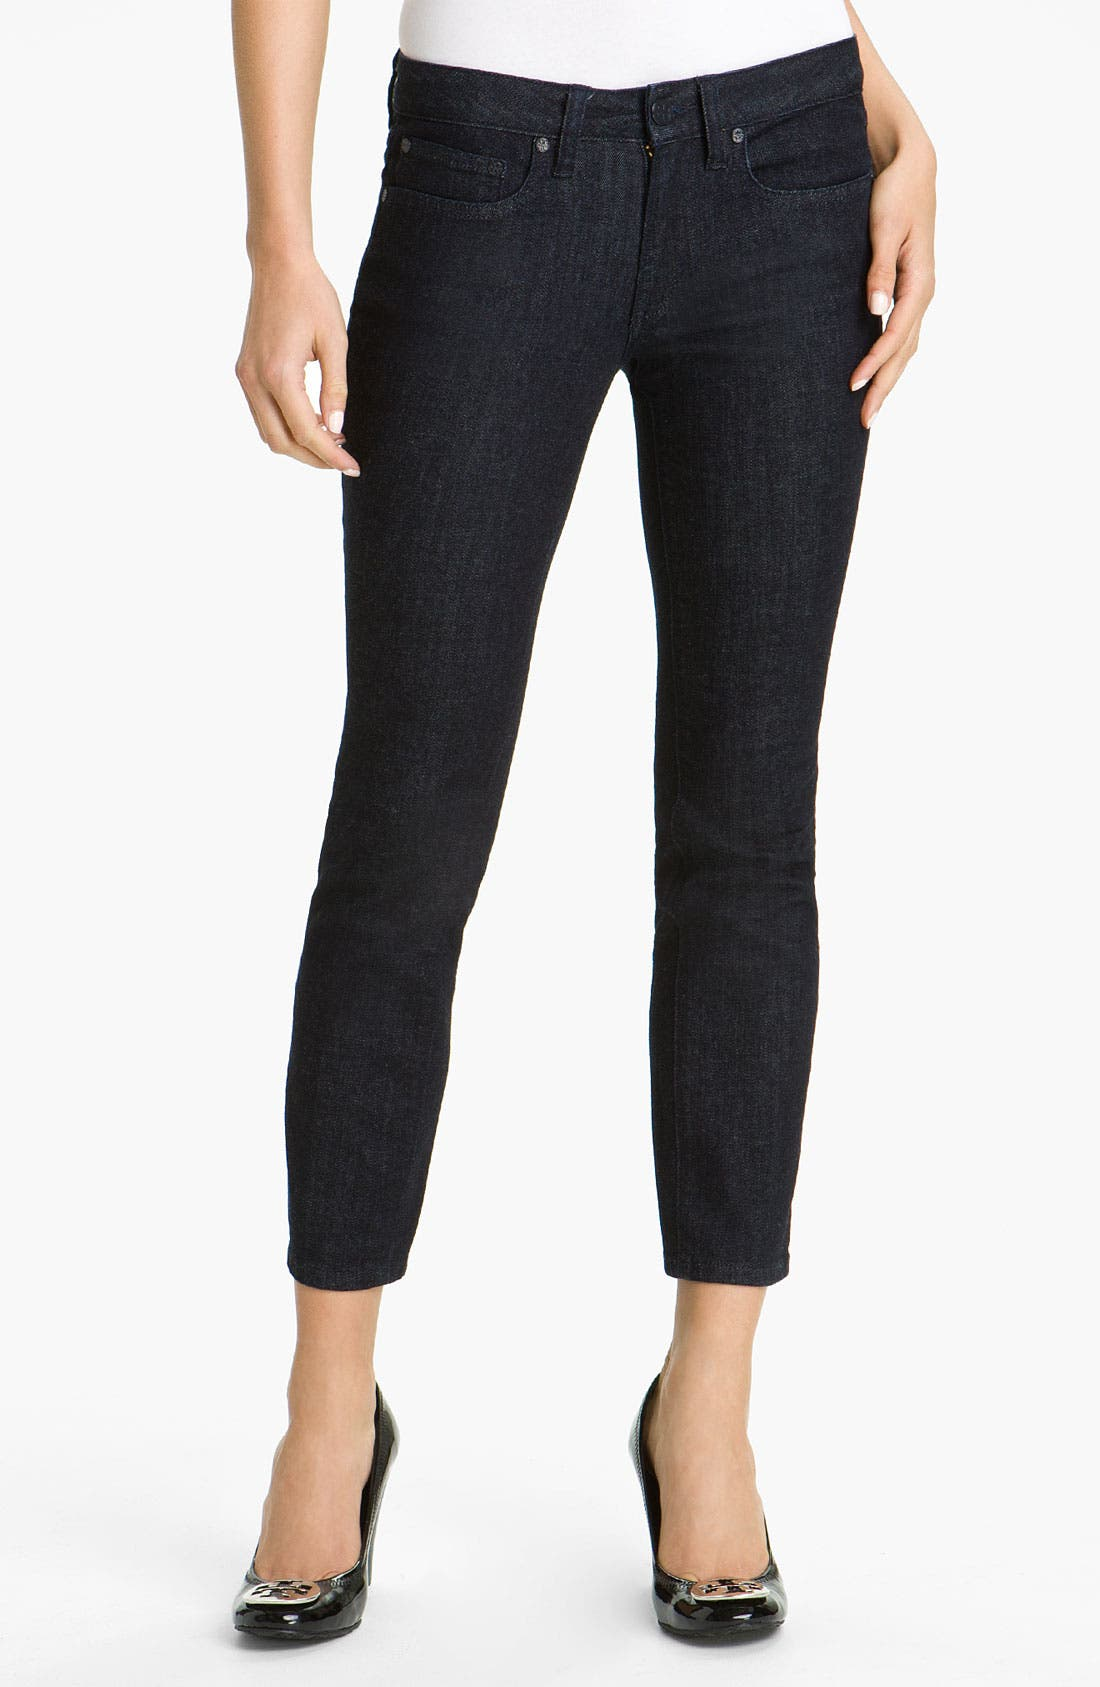 Main Image - Tory Burch Crop Skinny Jeans (Online Exclusive)